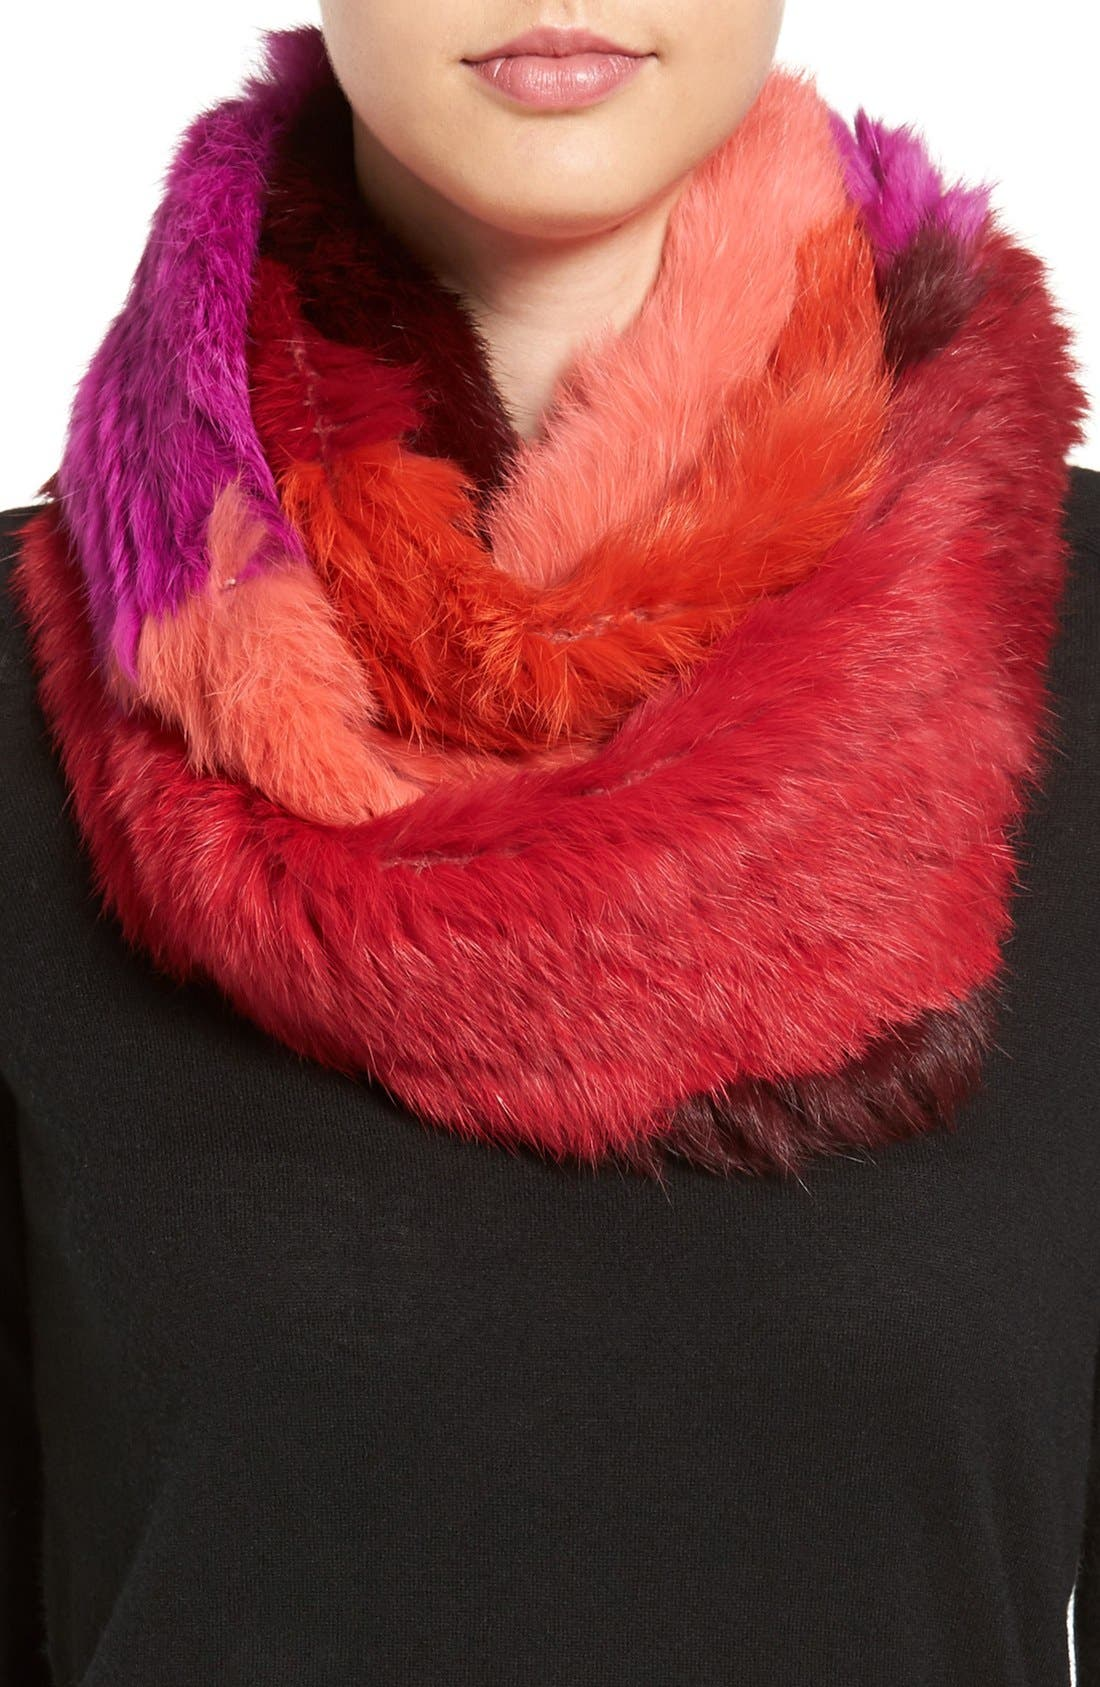 Colorblock Genuine Rabbit Fur Infinity Scarf,                             Main thumbnail 1, color,                             650